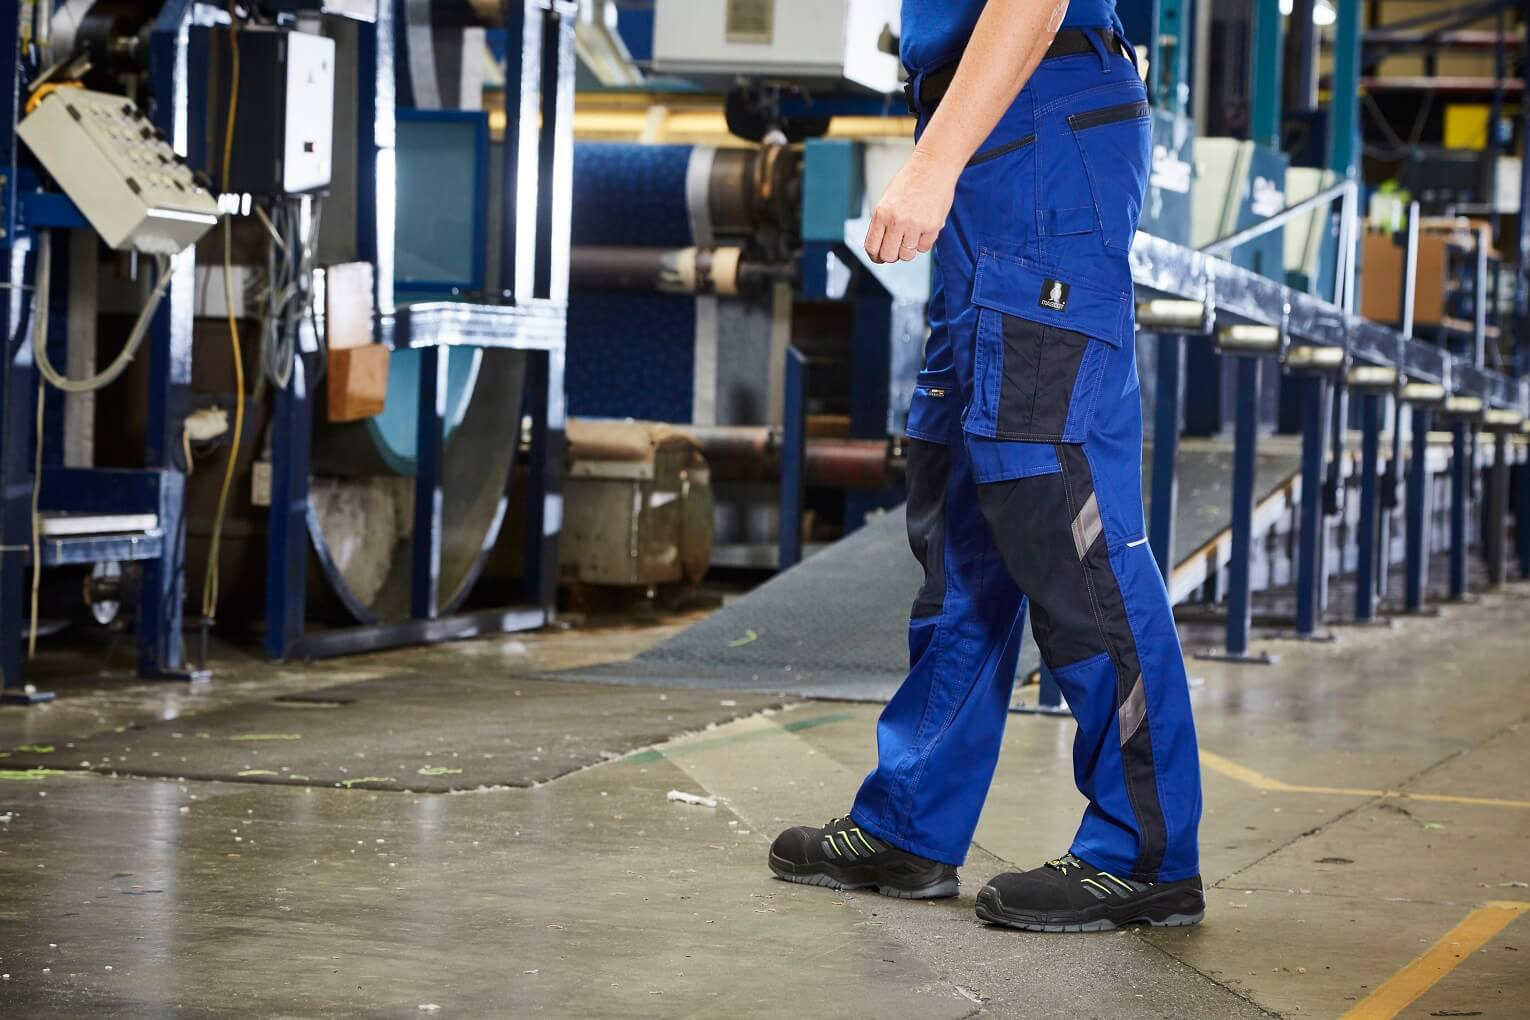 Work Trousers & Safety Shoe - Environment